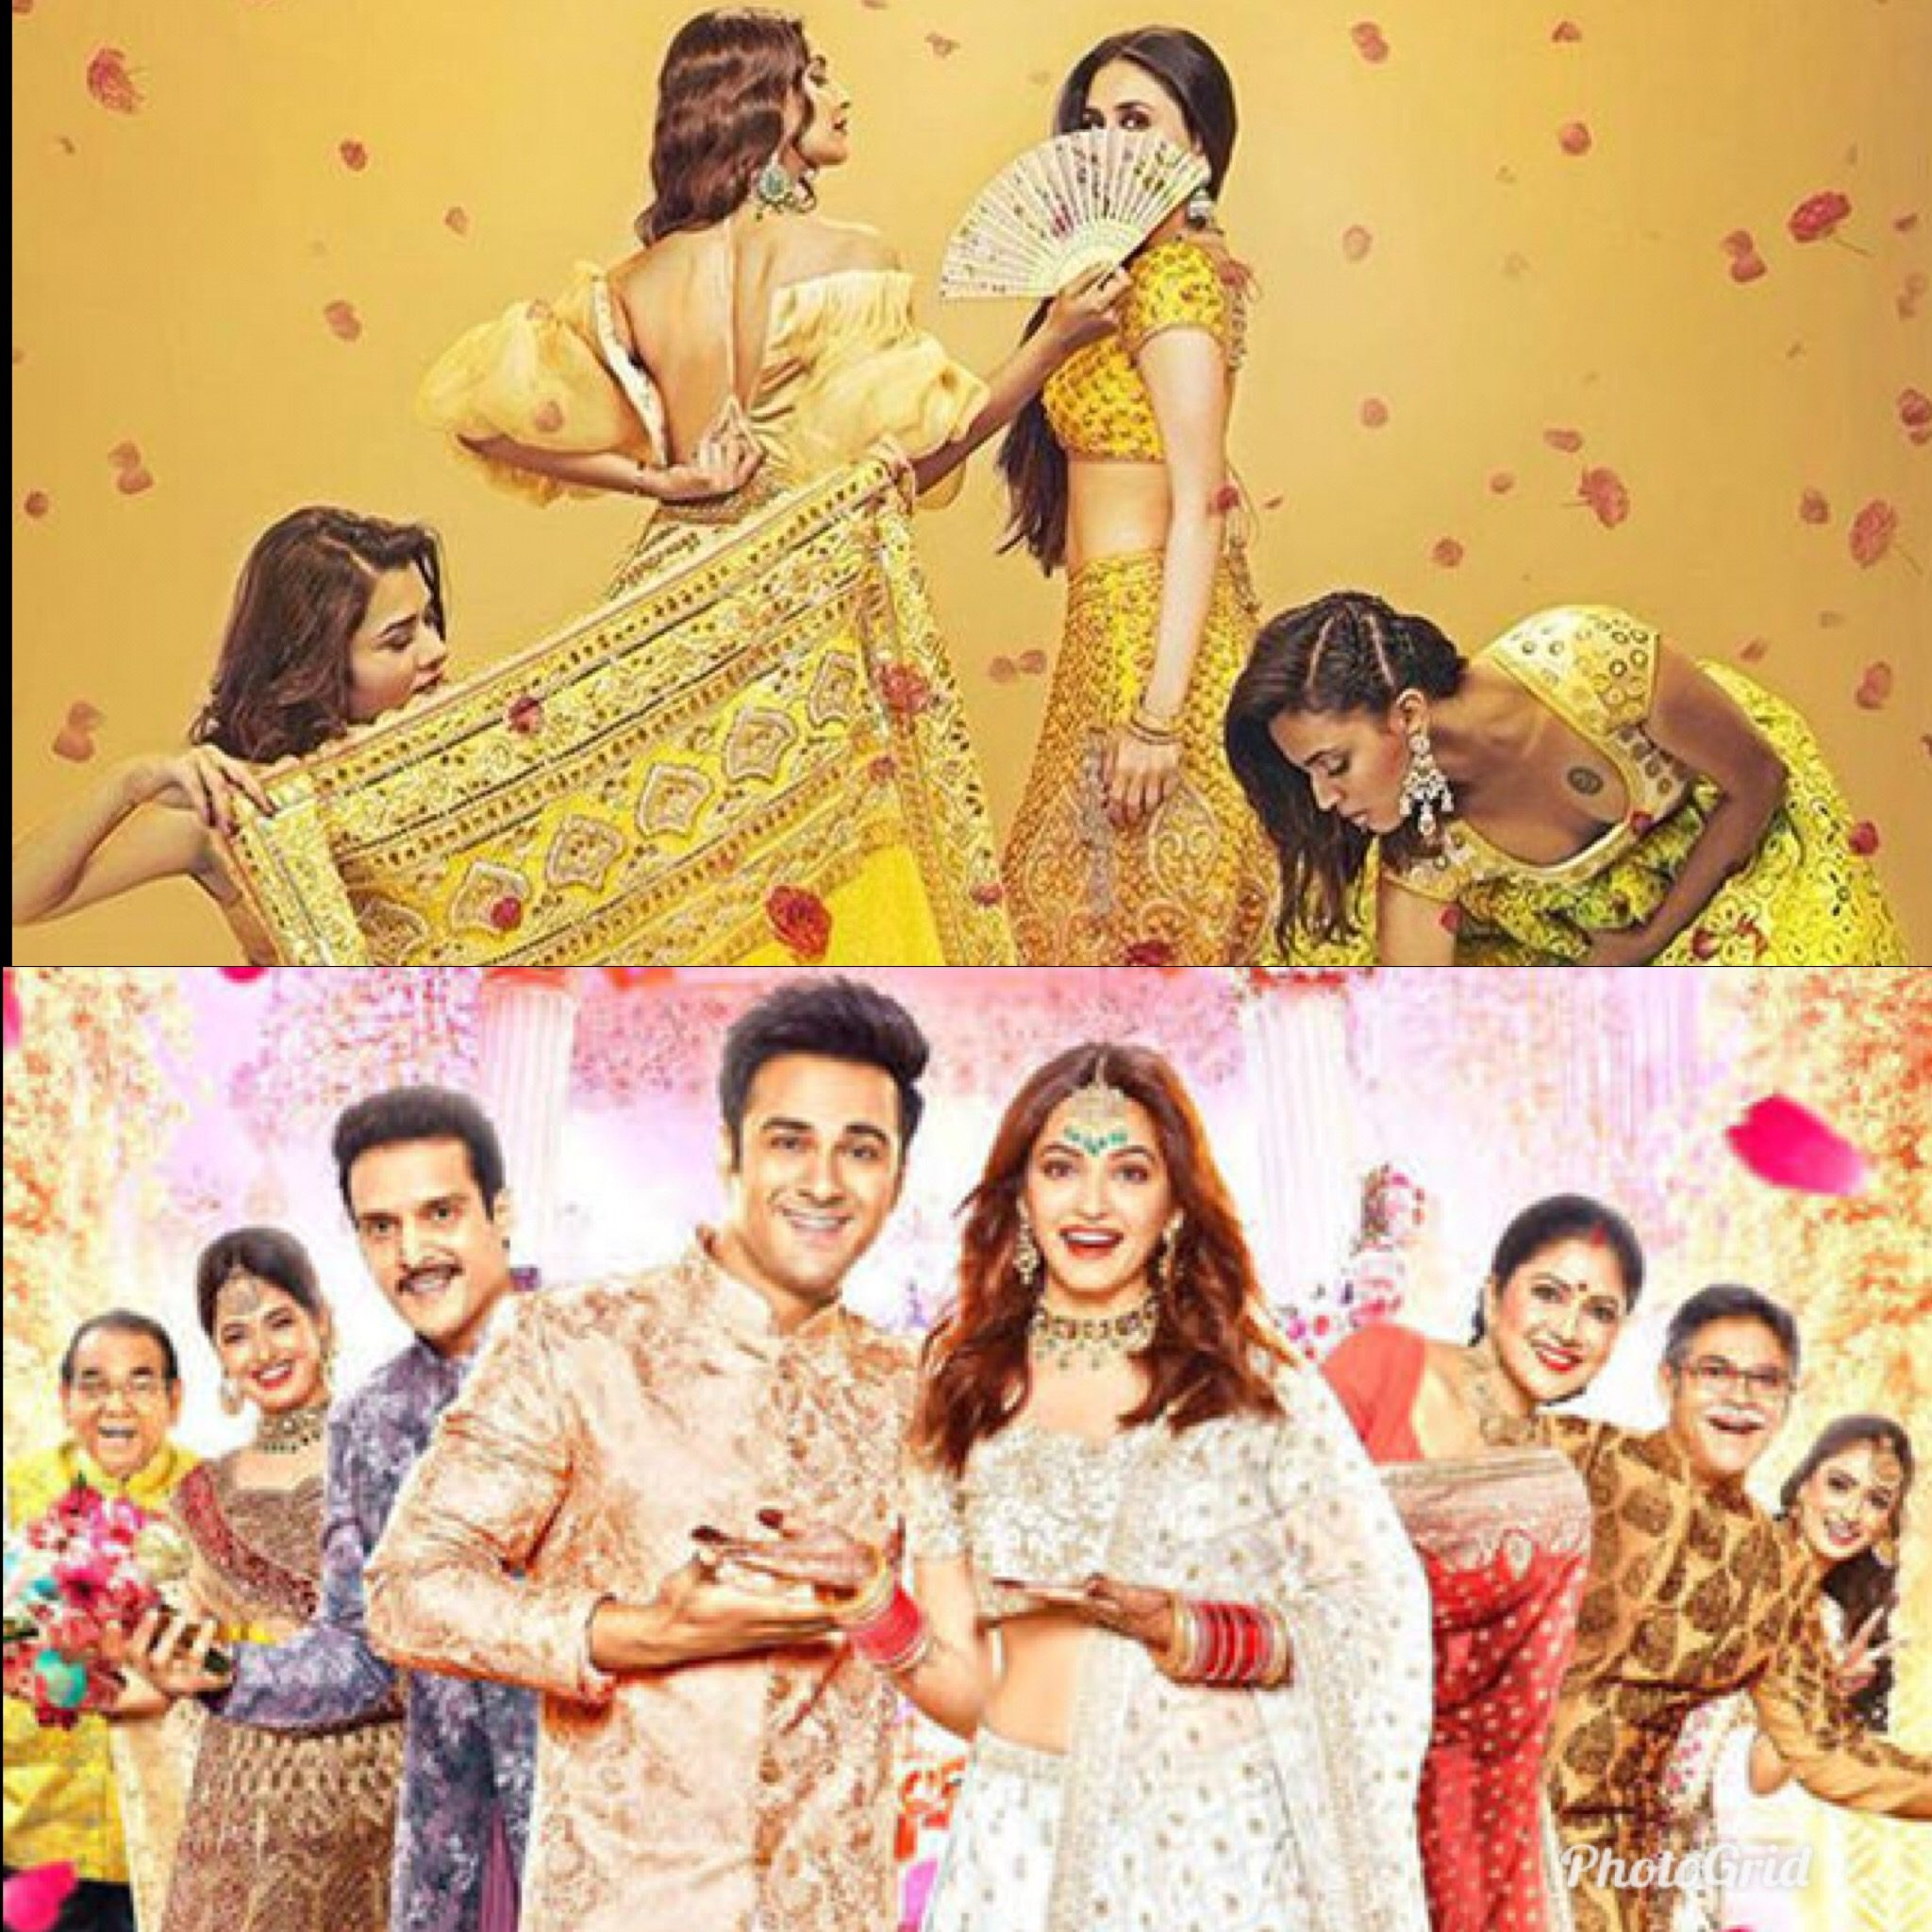 Veerey Ki Wedding.Do Not Confuse Jimmy Sheirgill S Veerey Ki Wedding With Kareena S